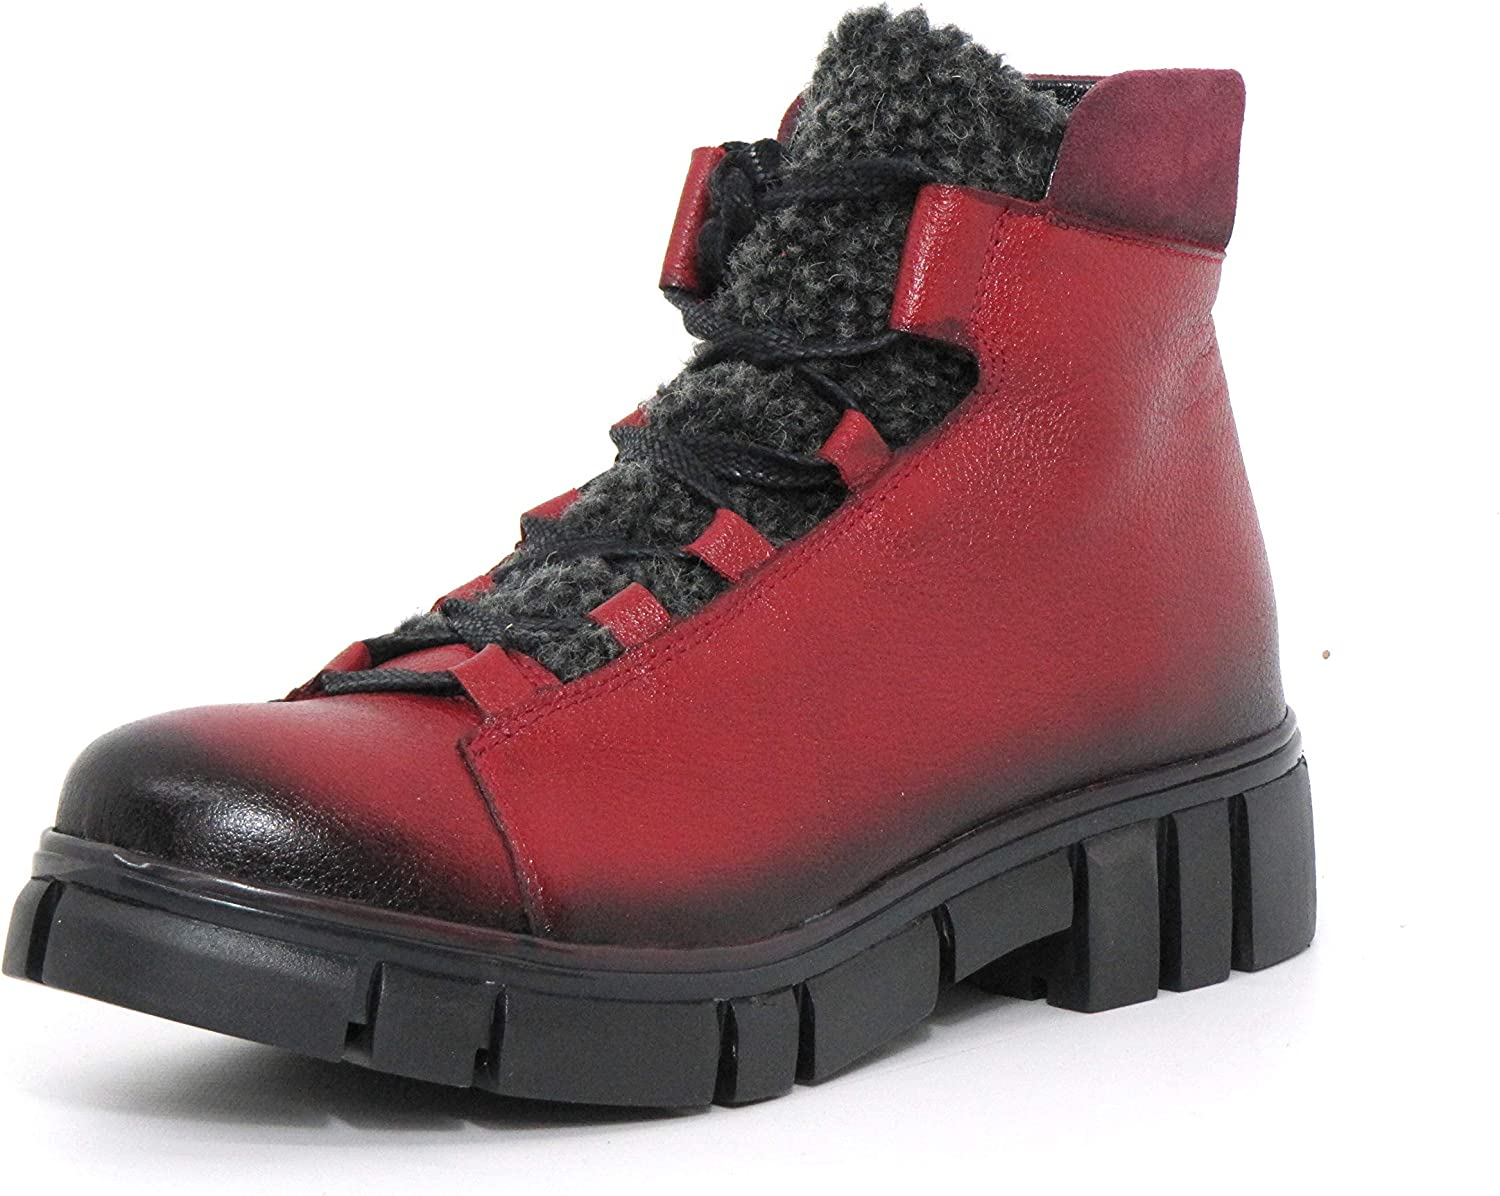 Maciejka Women Ankle Boots red, (red) 03794-23